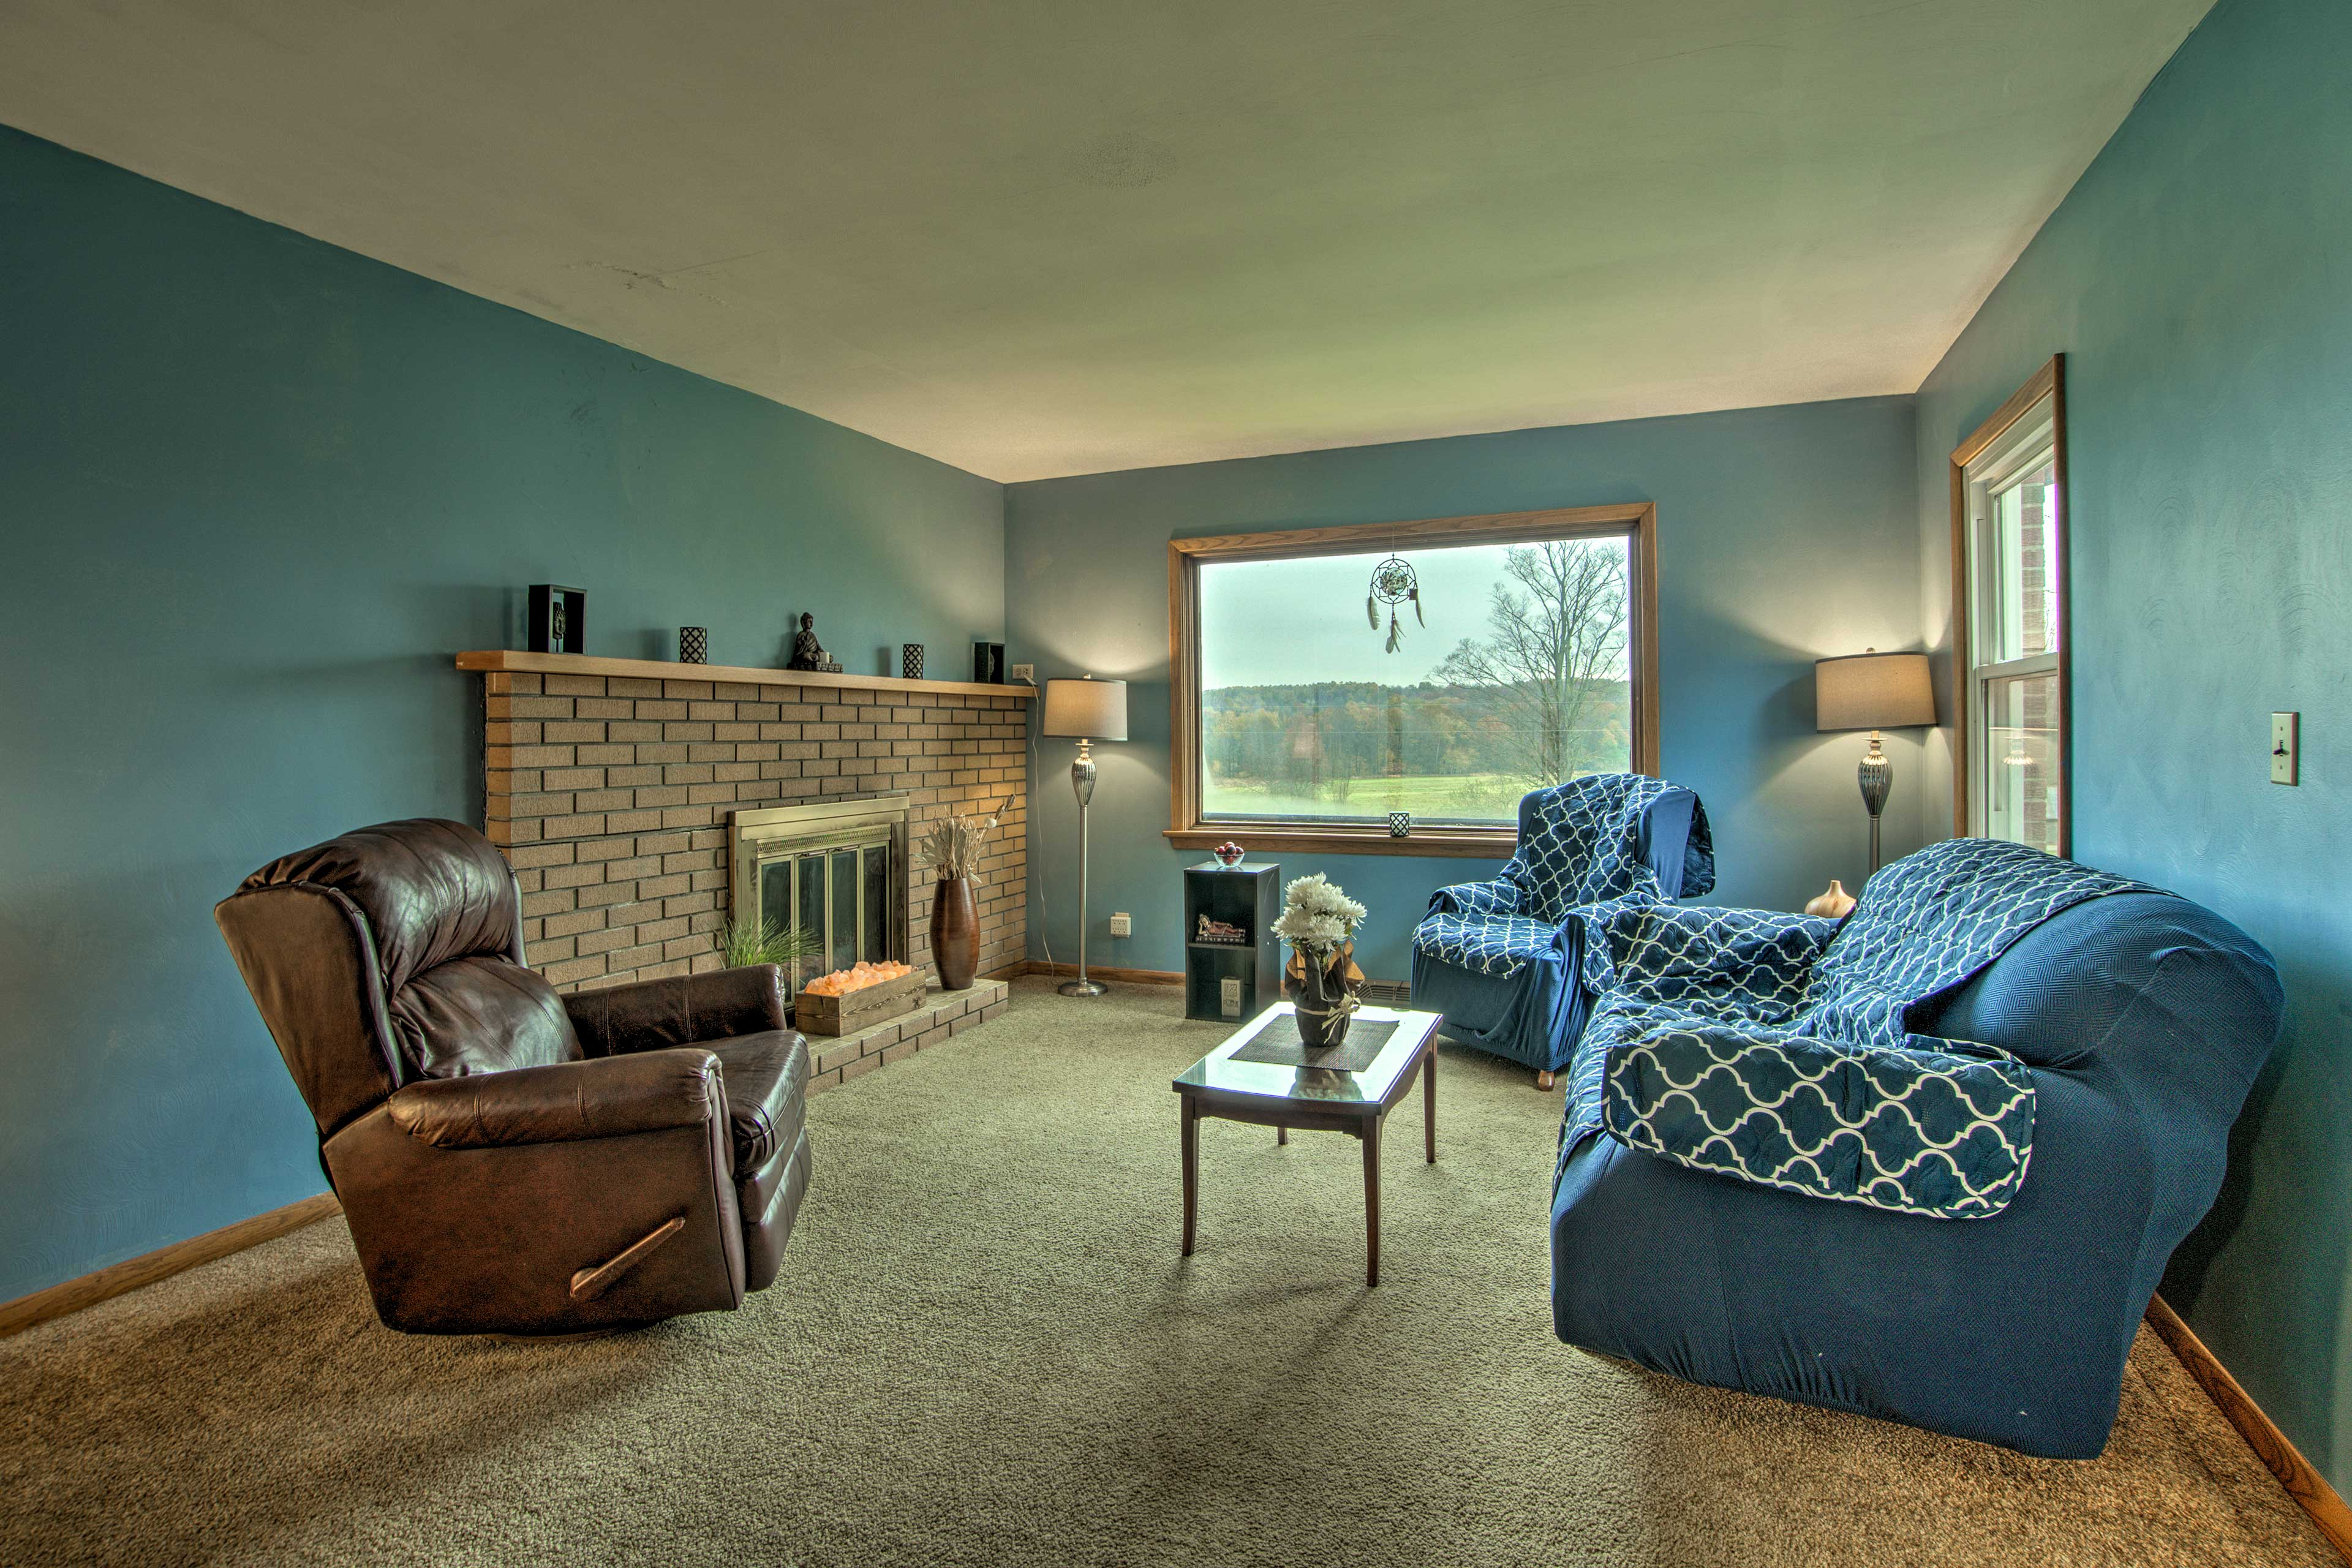 This 2-bed, 1-bath vacation rental home lies on 75 acres of land in Union City!